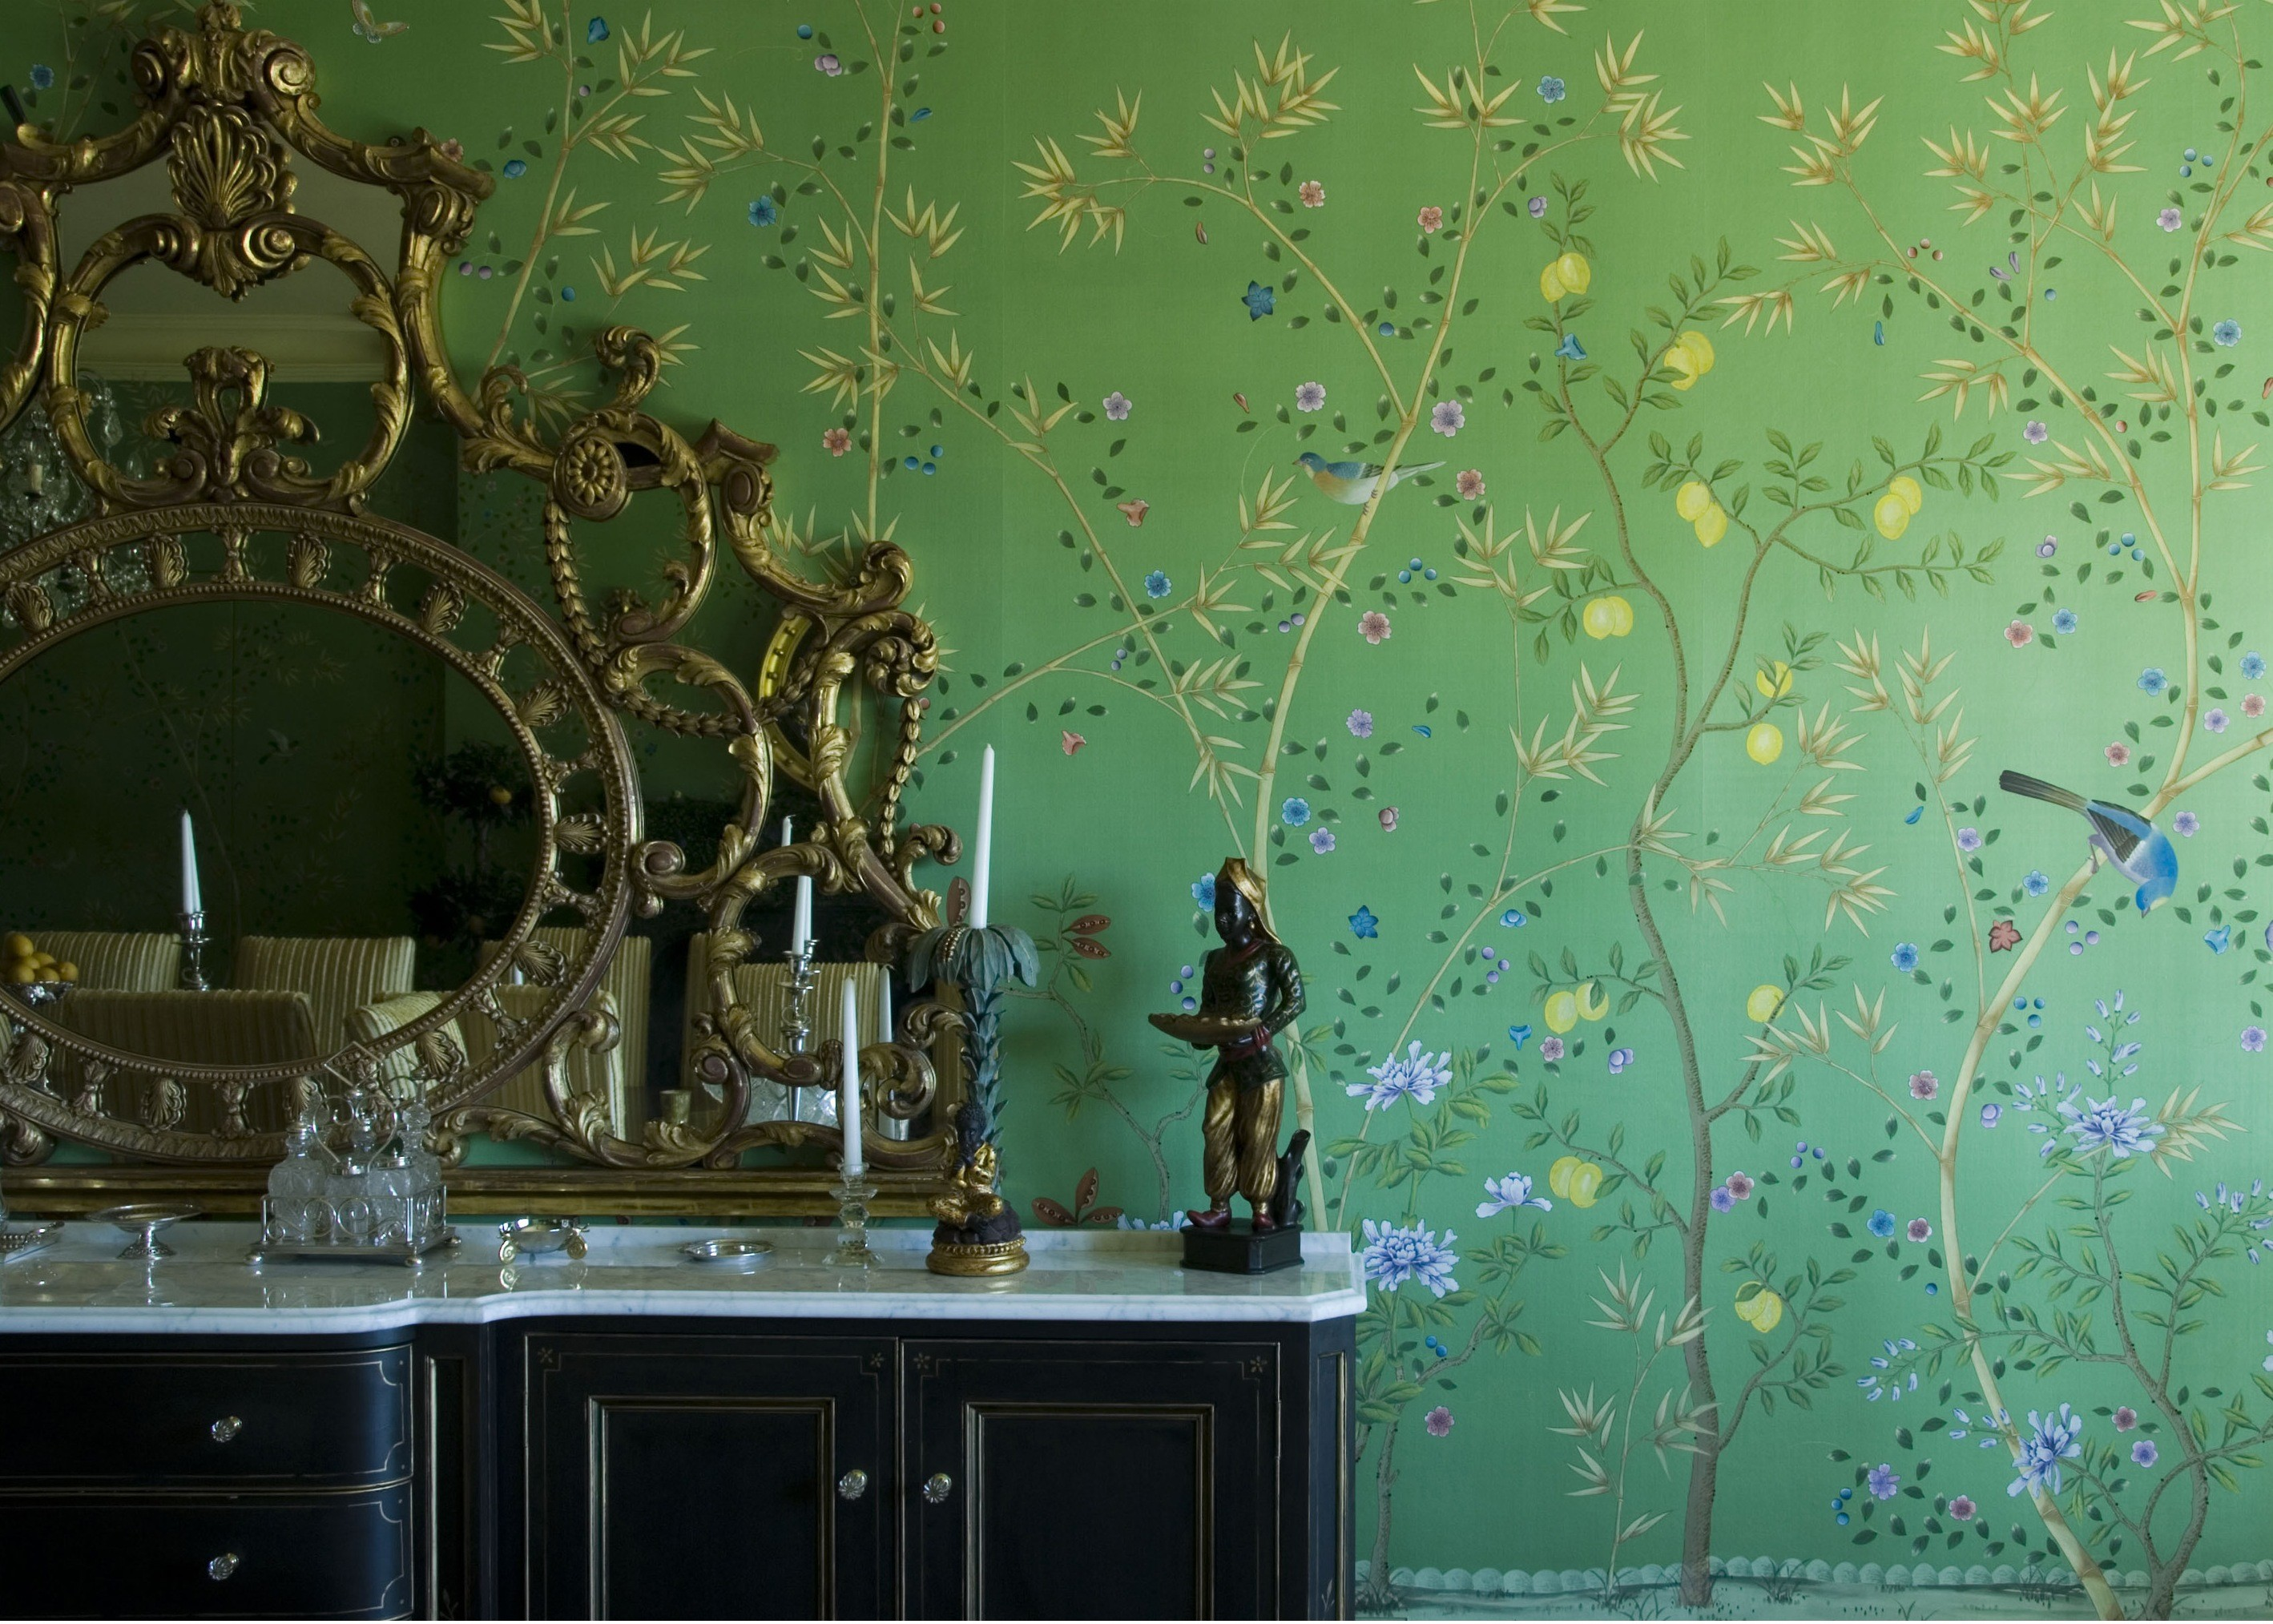 Res: 2837x2027, Chinoiserie Wallpaper Gold Hd Wallpapers Blog. Exotic Oriental Inspired  Wallpaper